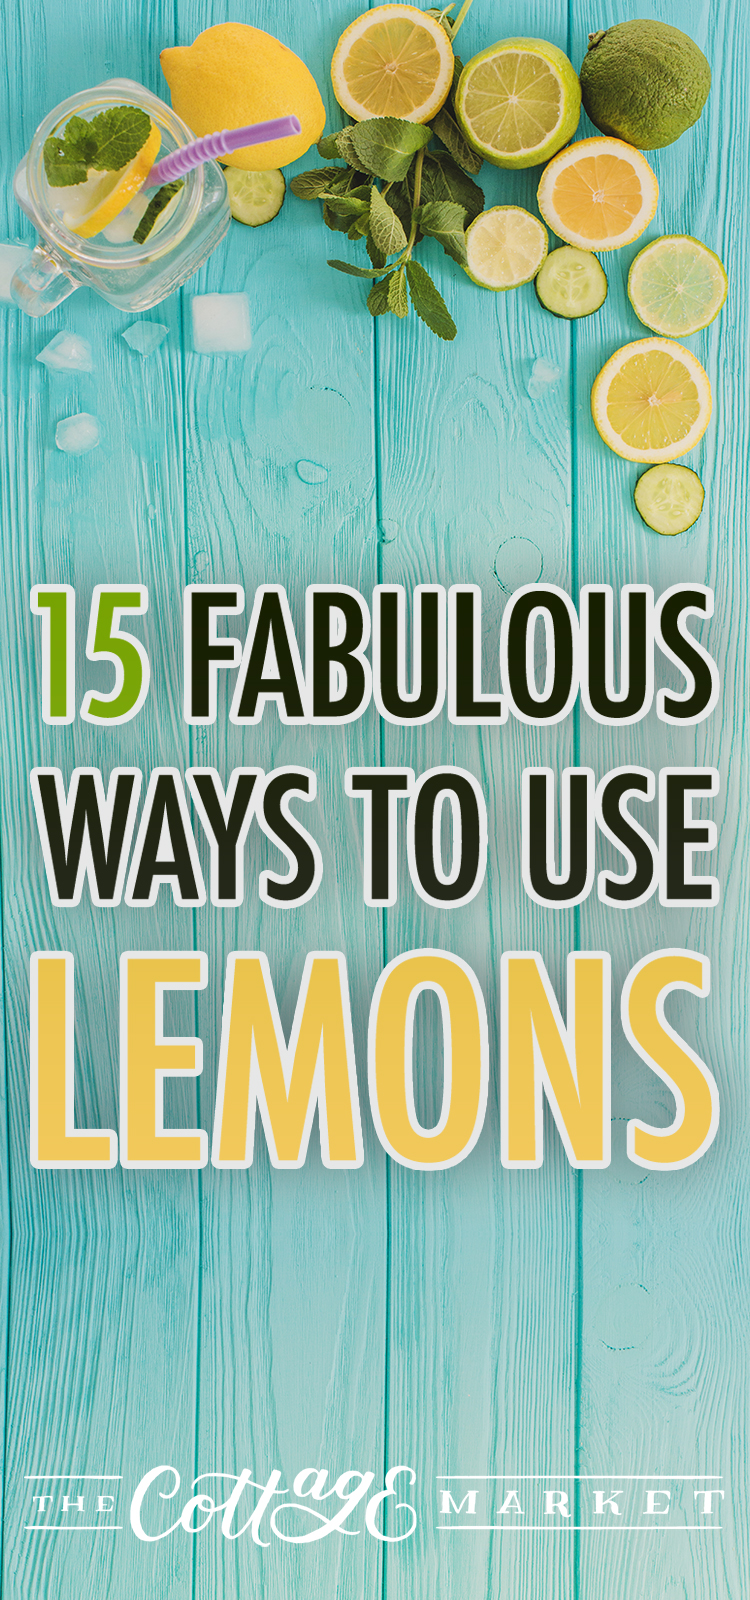 http://thecottagemarket.com/wp-content/uploads/2017/07/Lemons-Tower-1.jpg